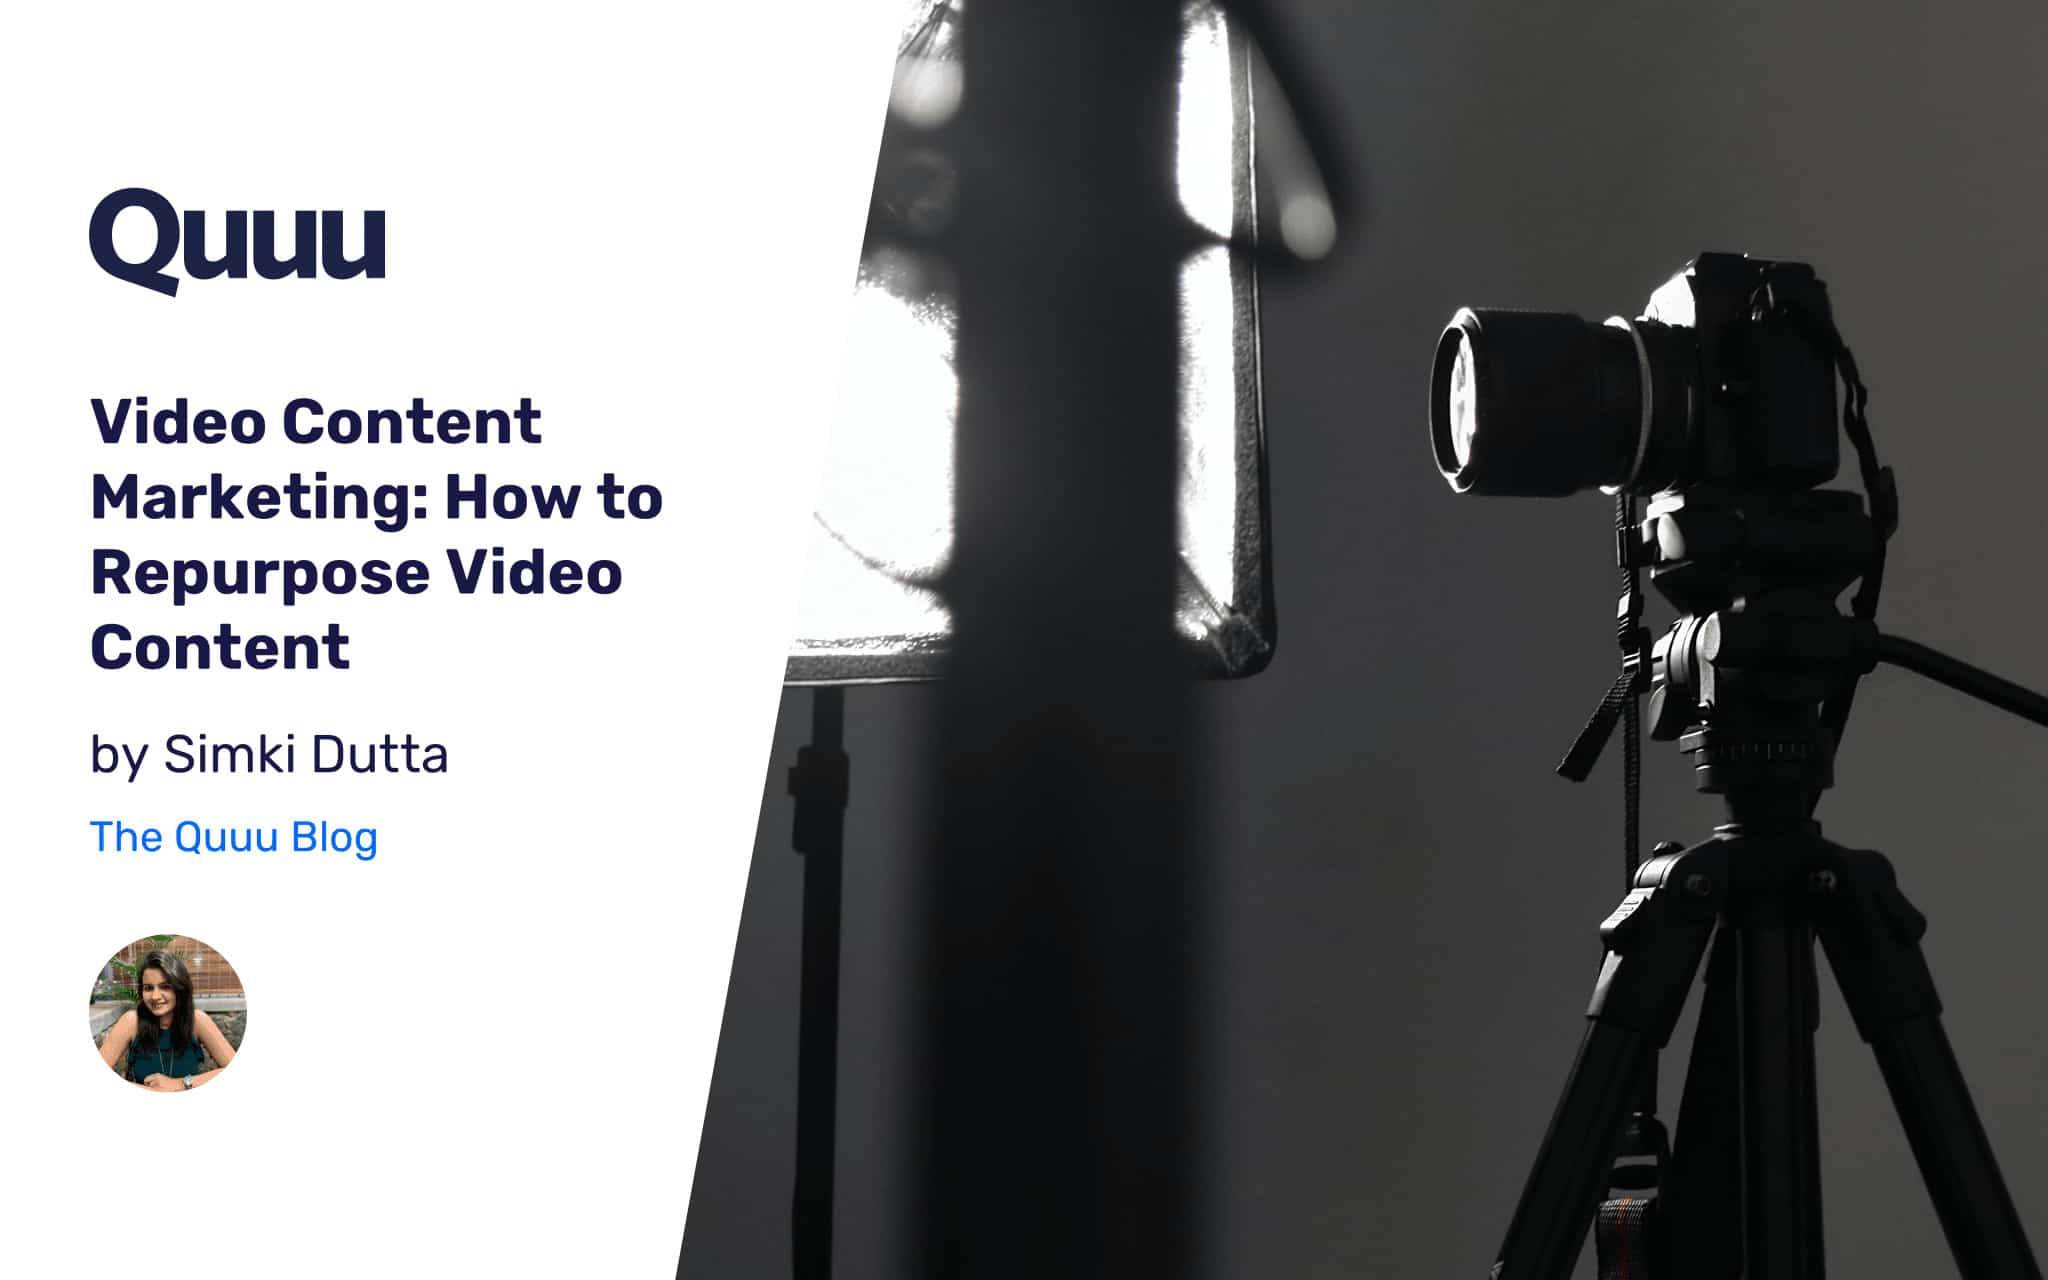 Video Content Marketing: How to Repurpose Video Content